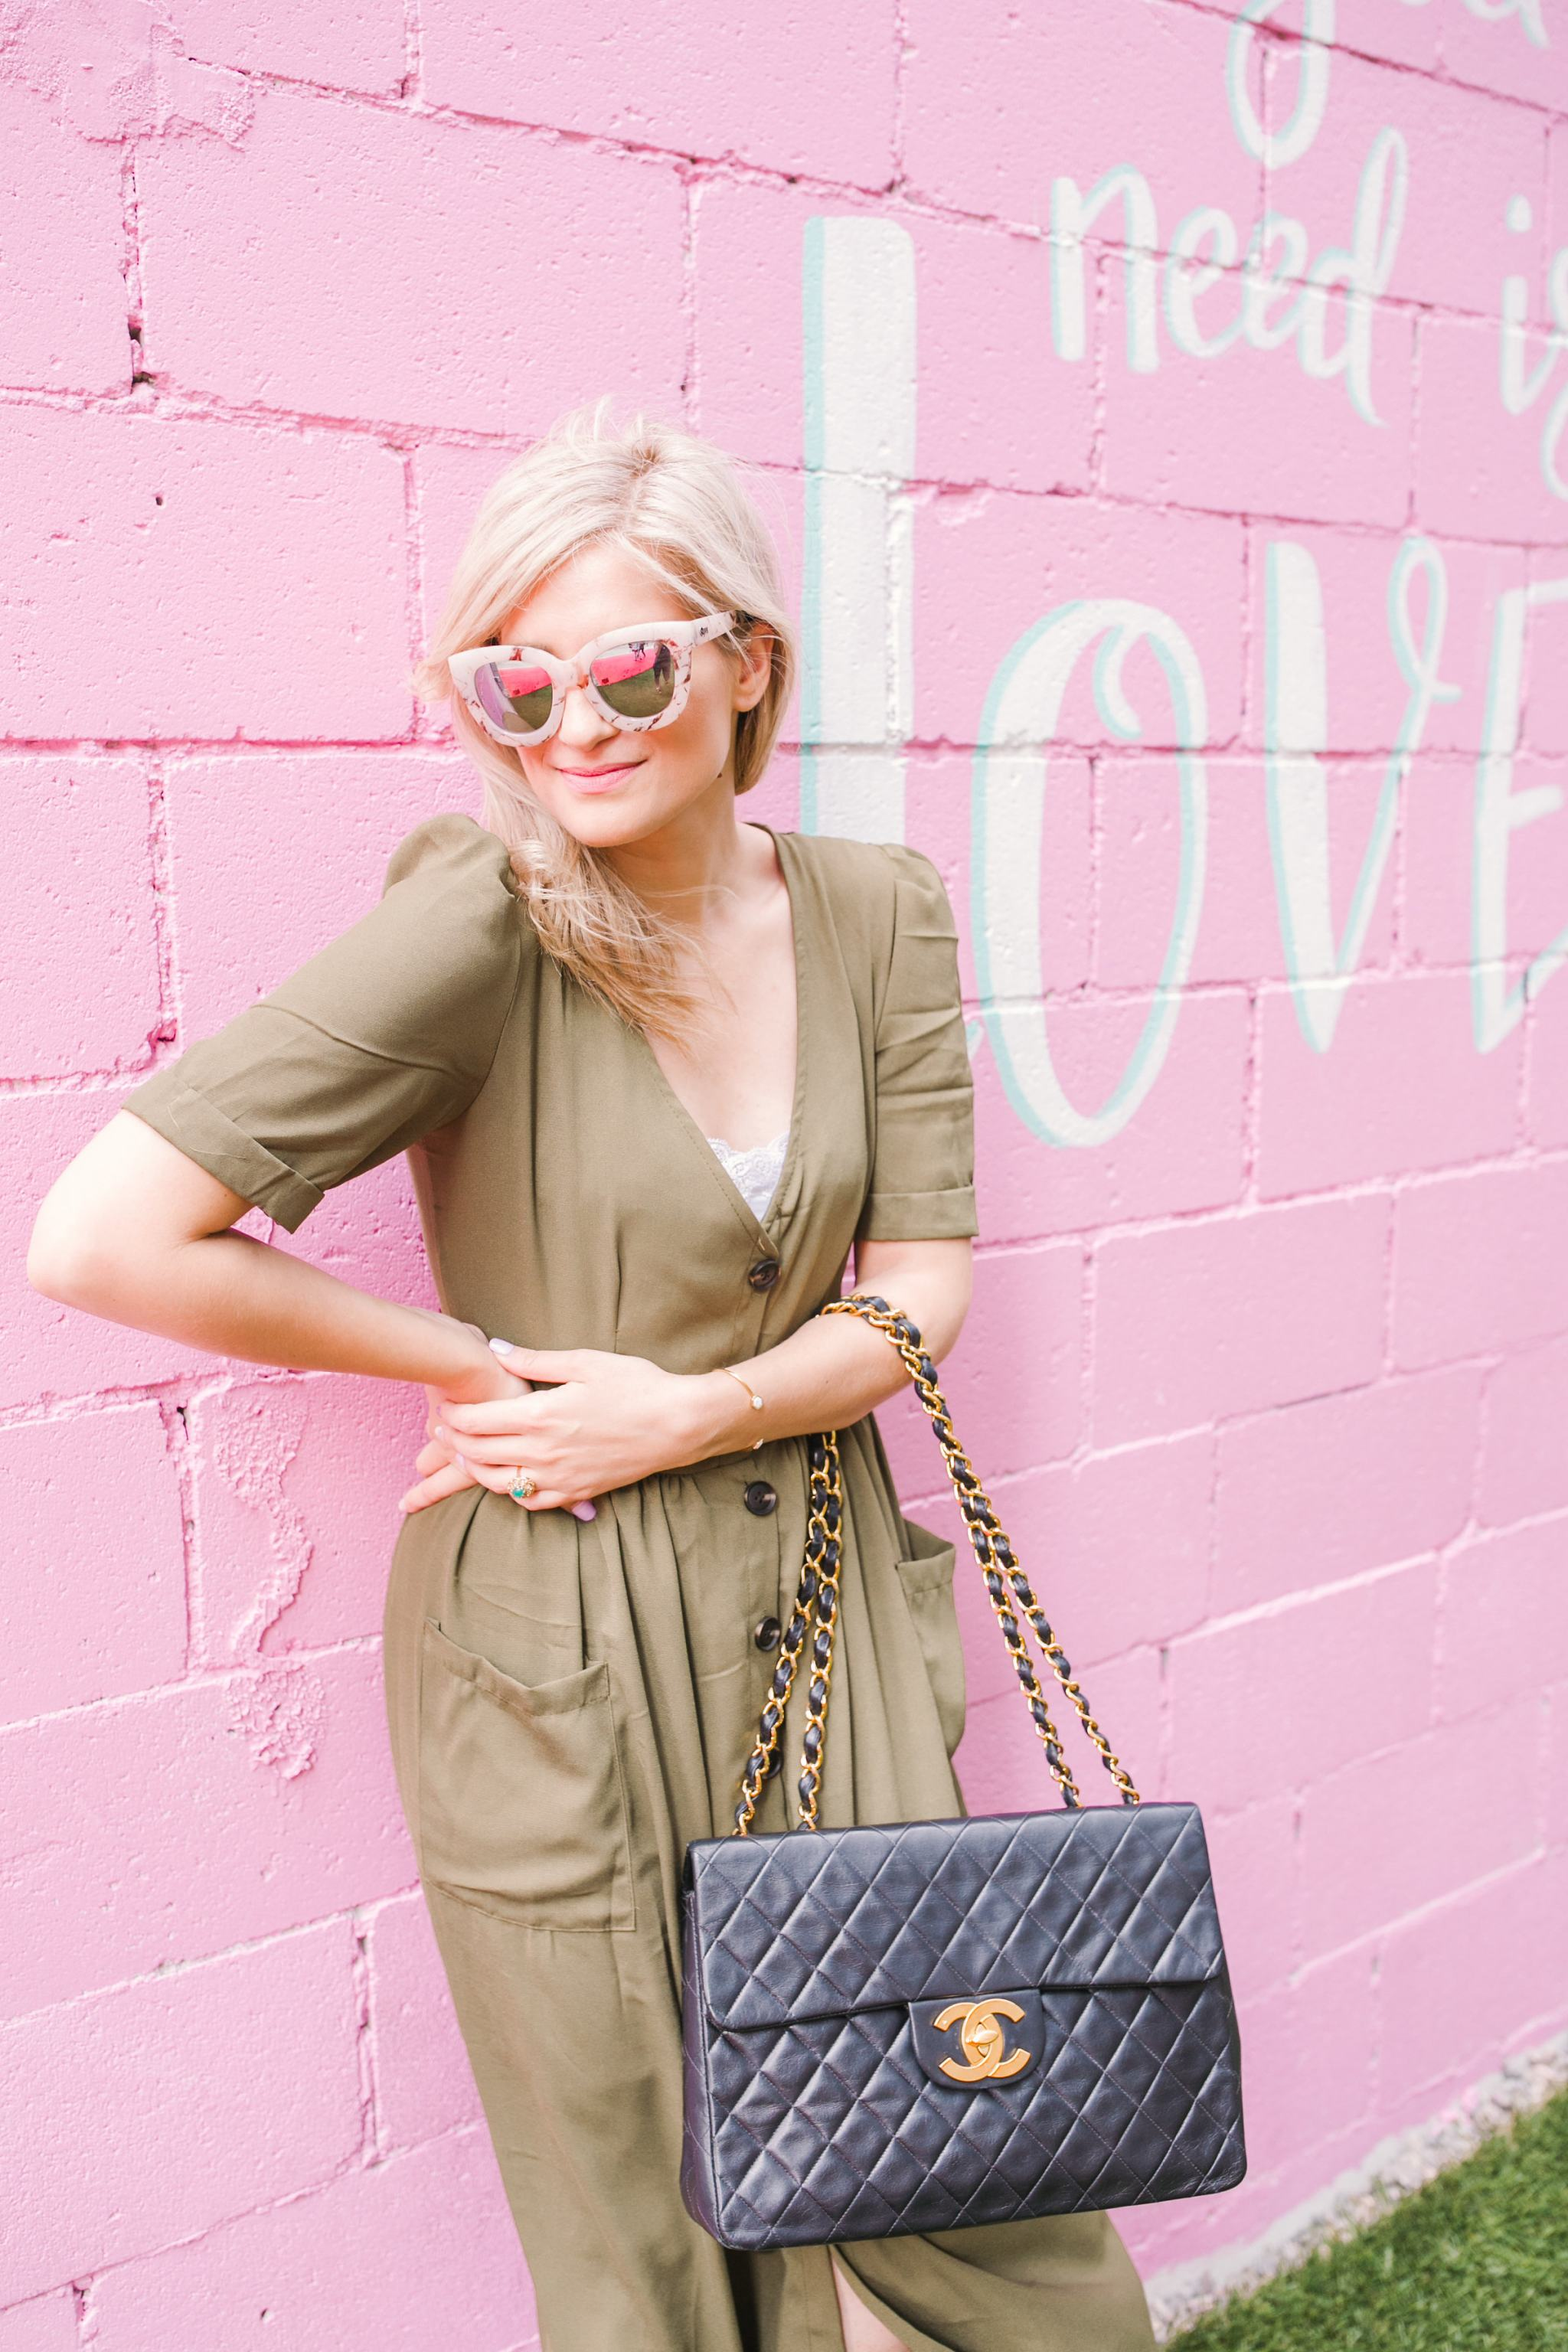 Bijuleni - Detailed guide about working with a blog photographer - Green SheIn dress and vintage jumbo chanel handbag